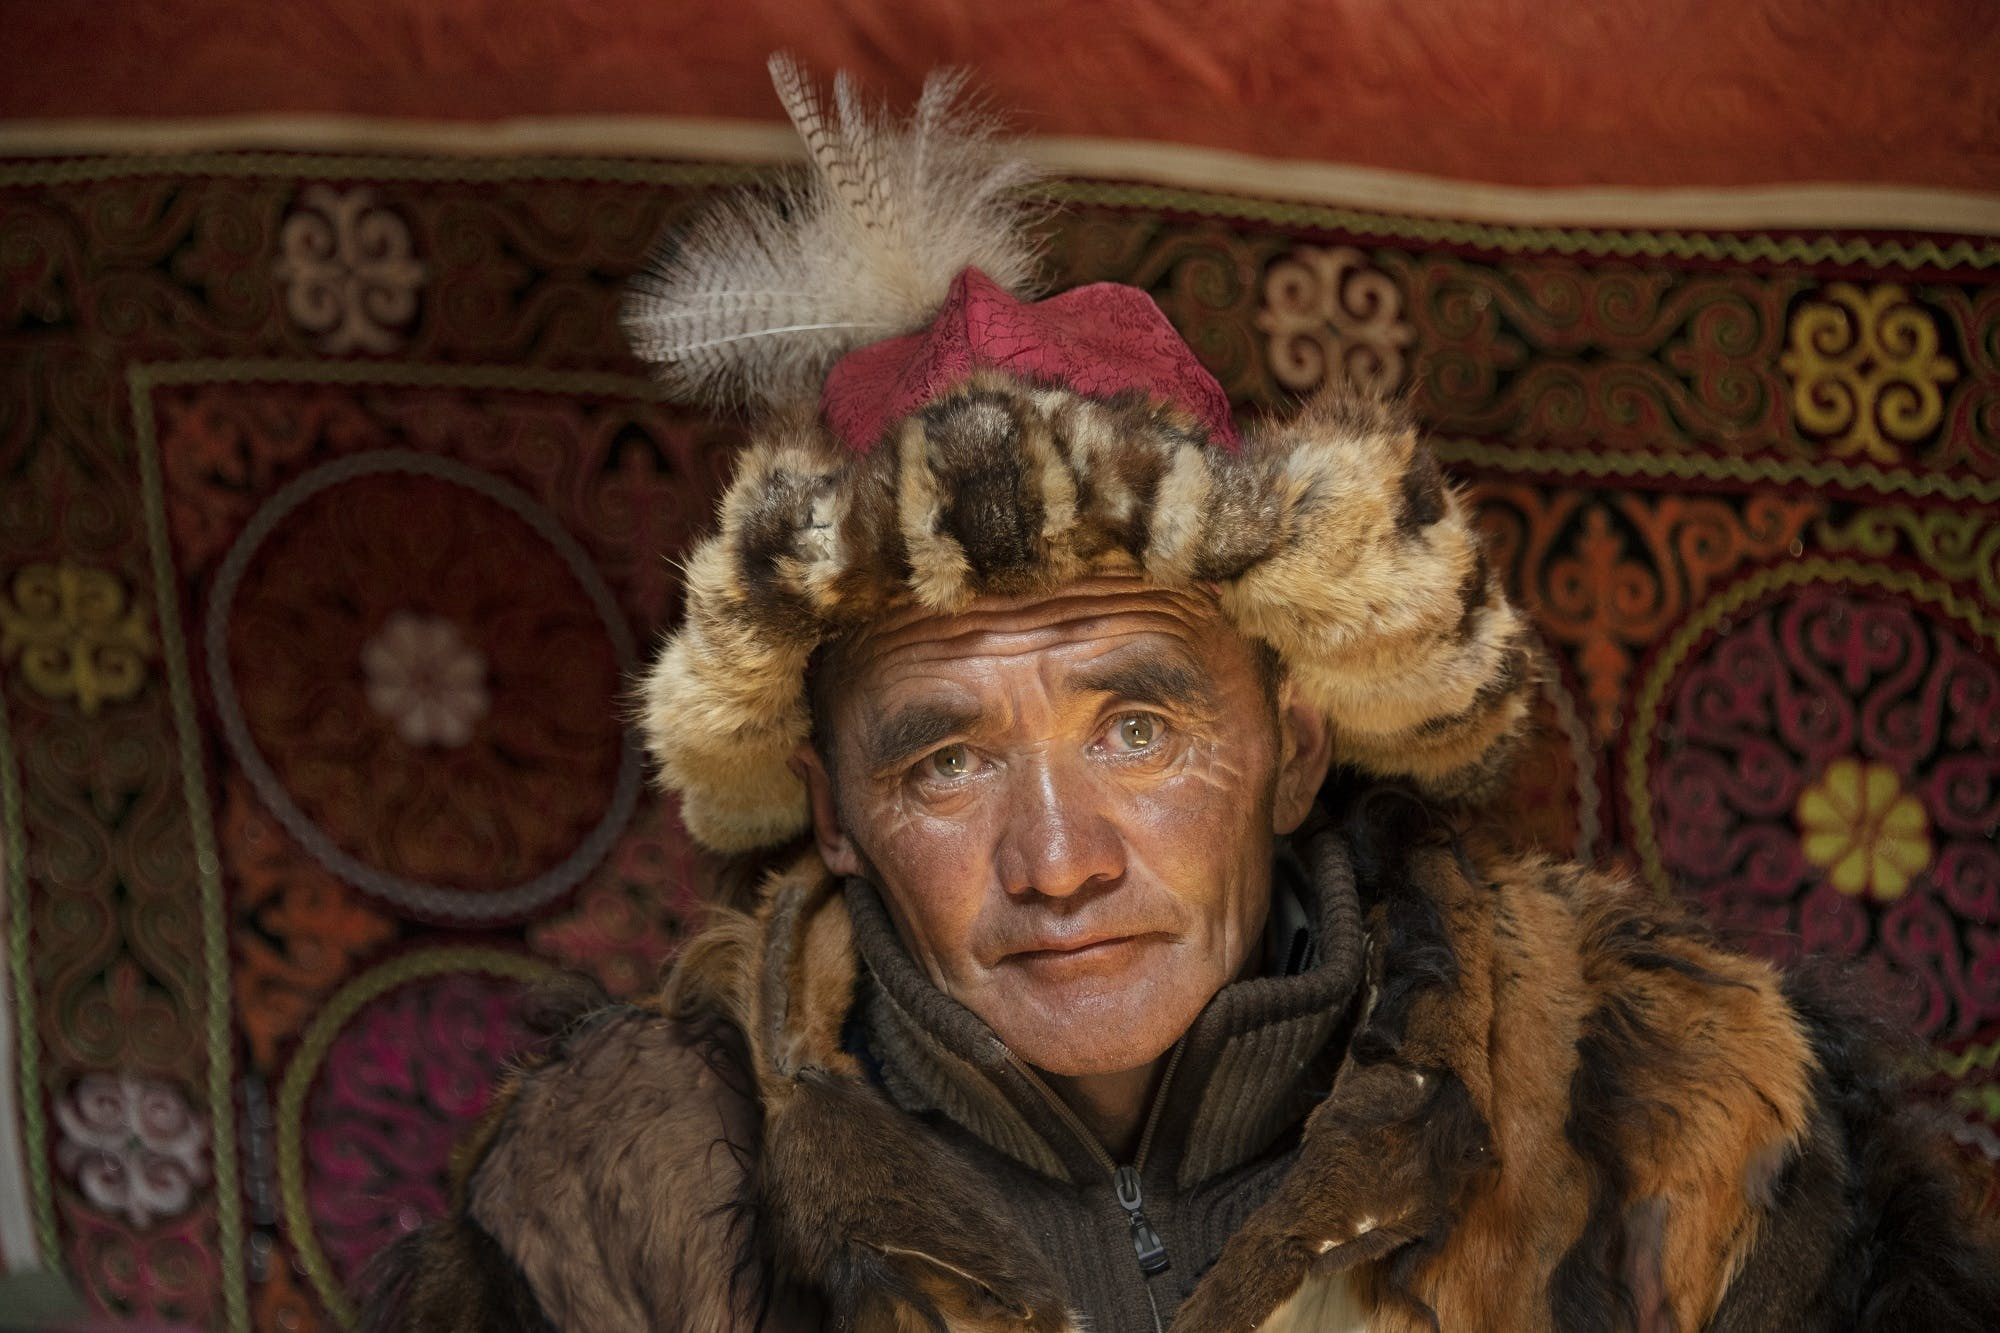 Mongolia by Steve McCurry